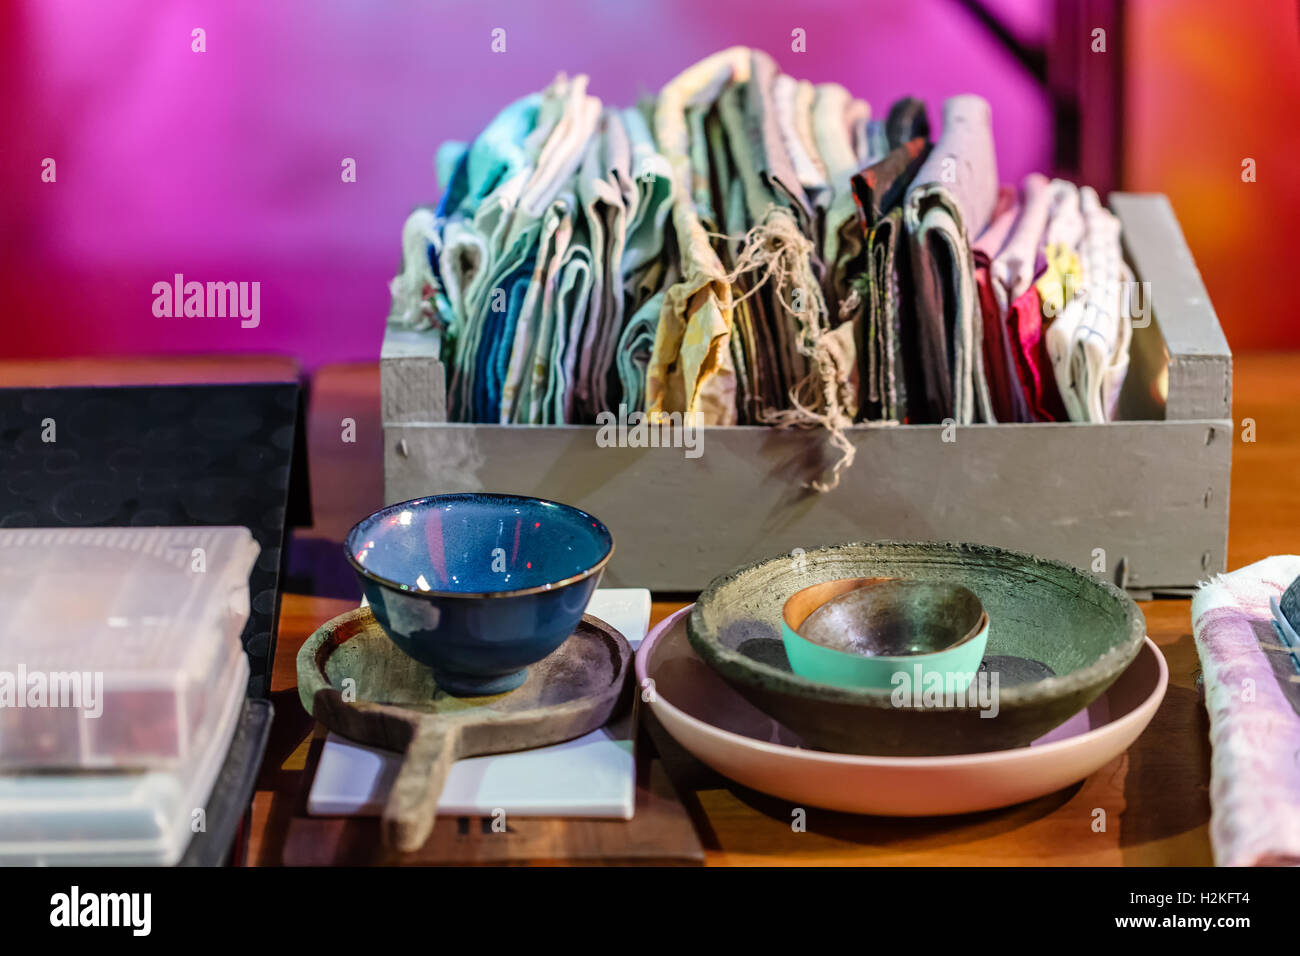 Accessories for photographing of food, products and still lifes - Stock Image